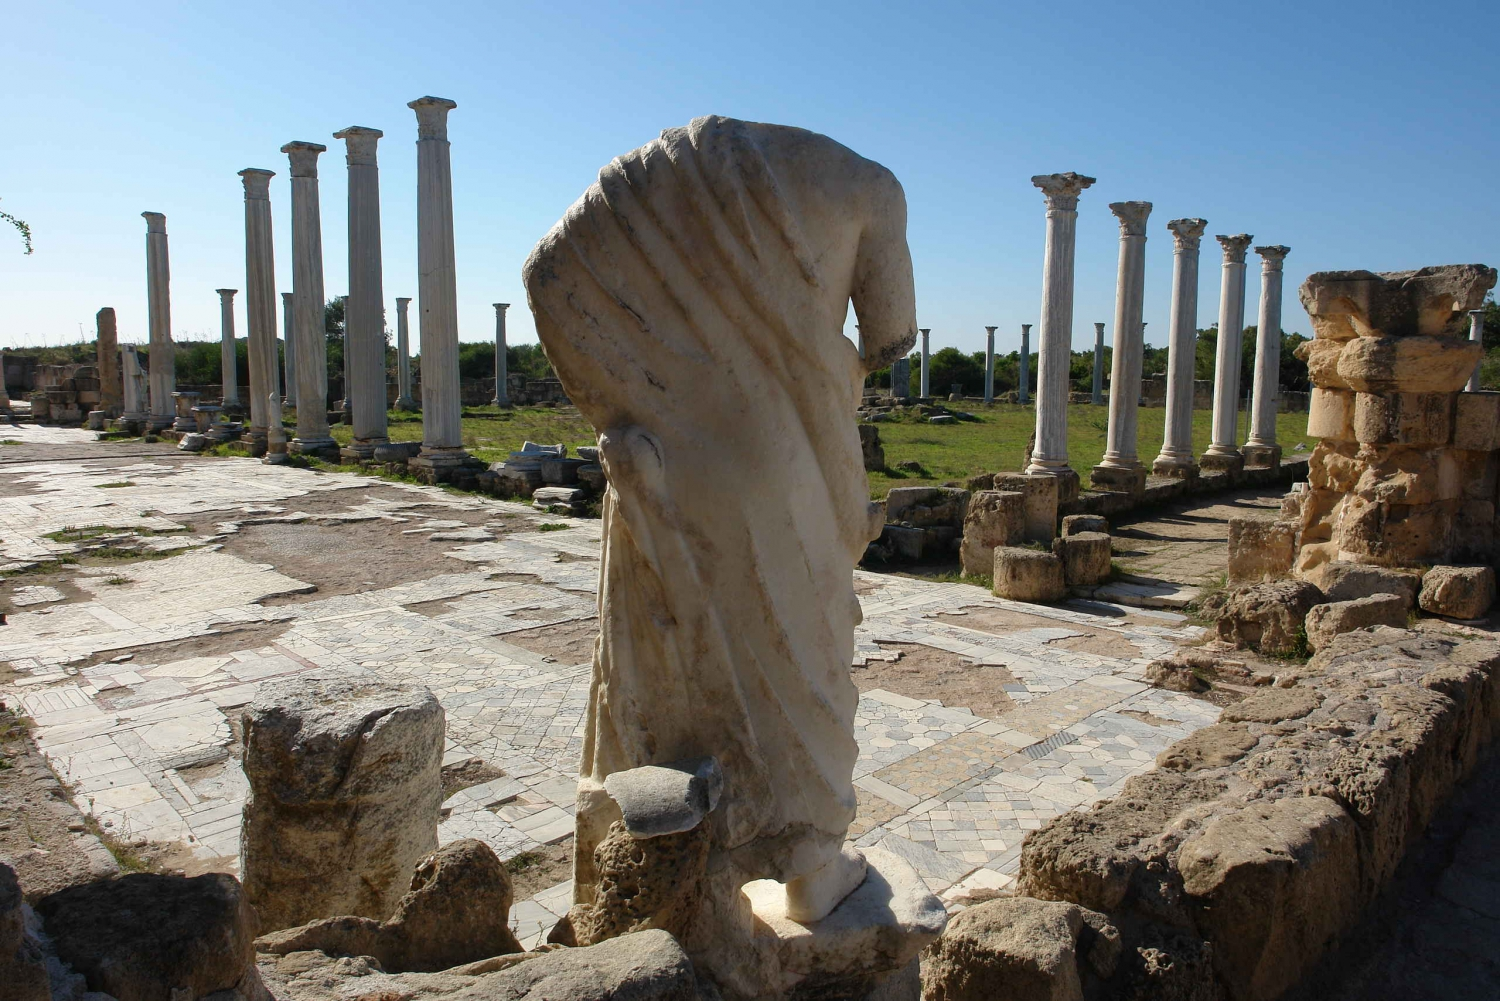 From Paphos and Limassol: Discover Famagusta